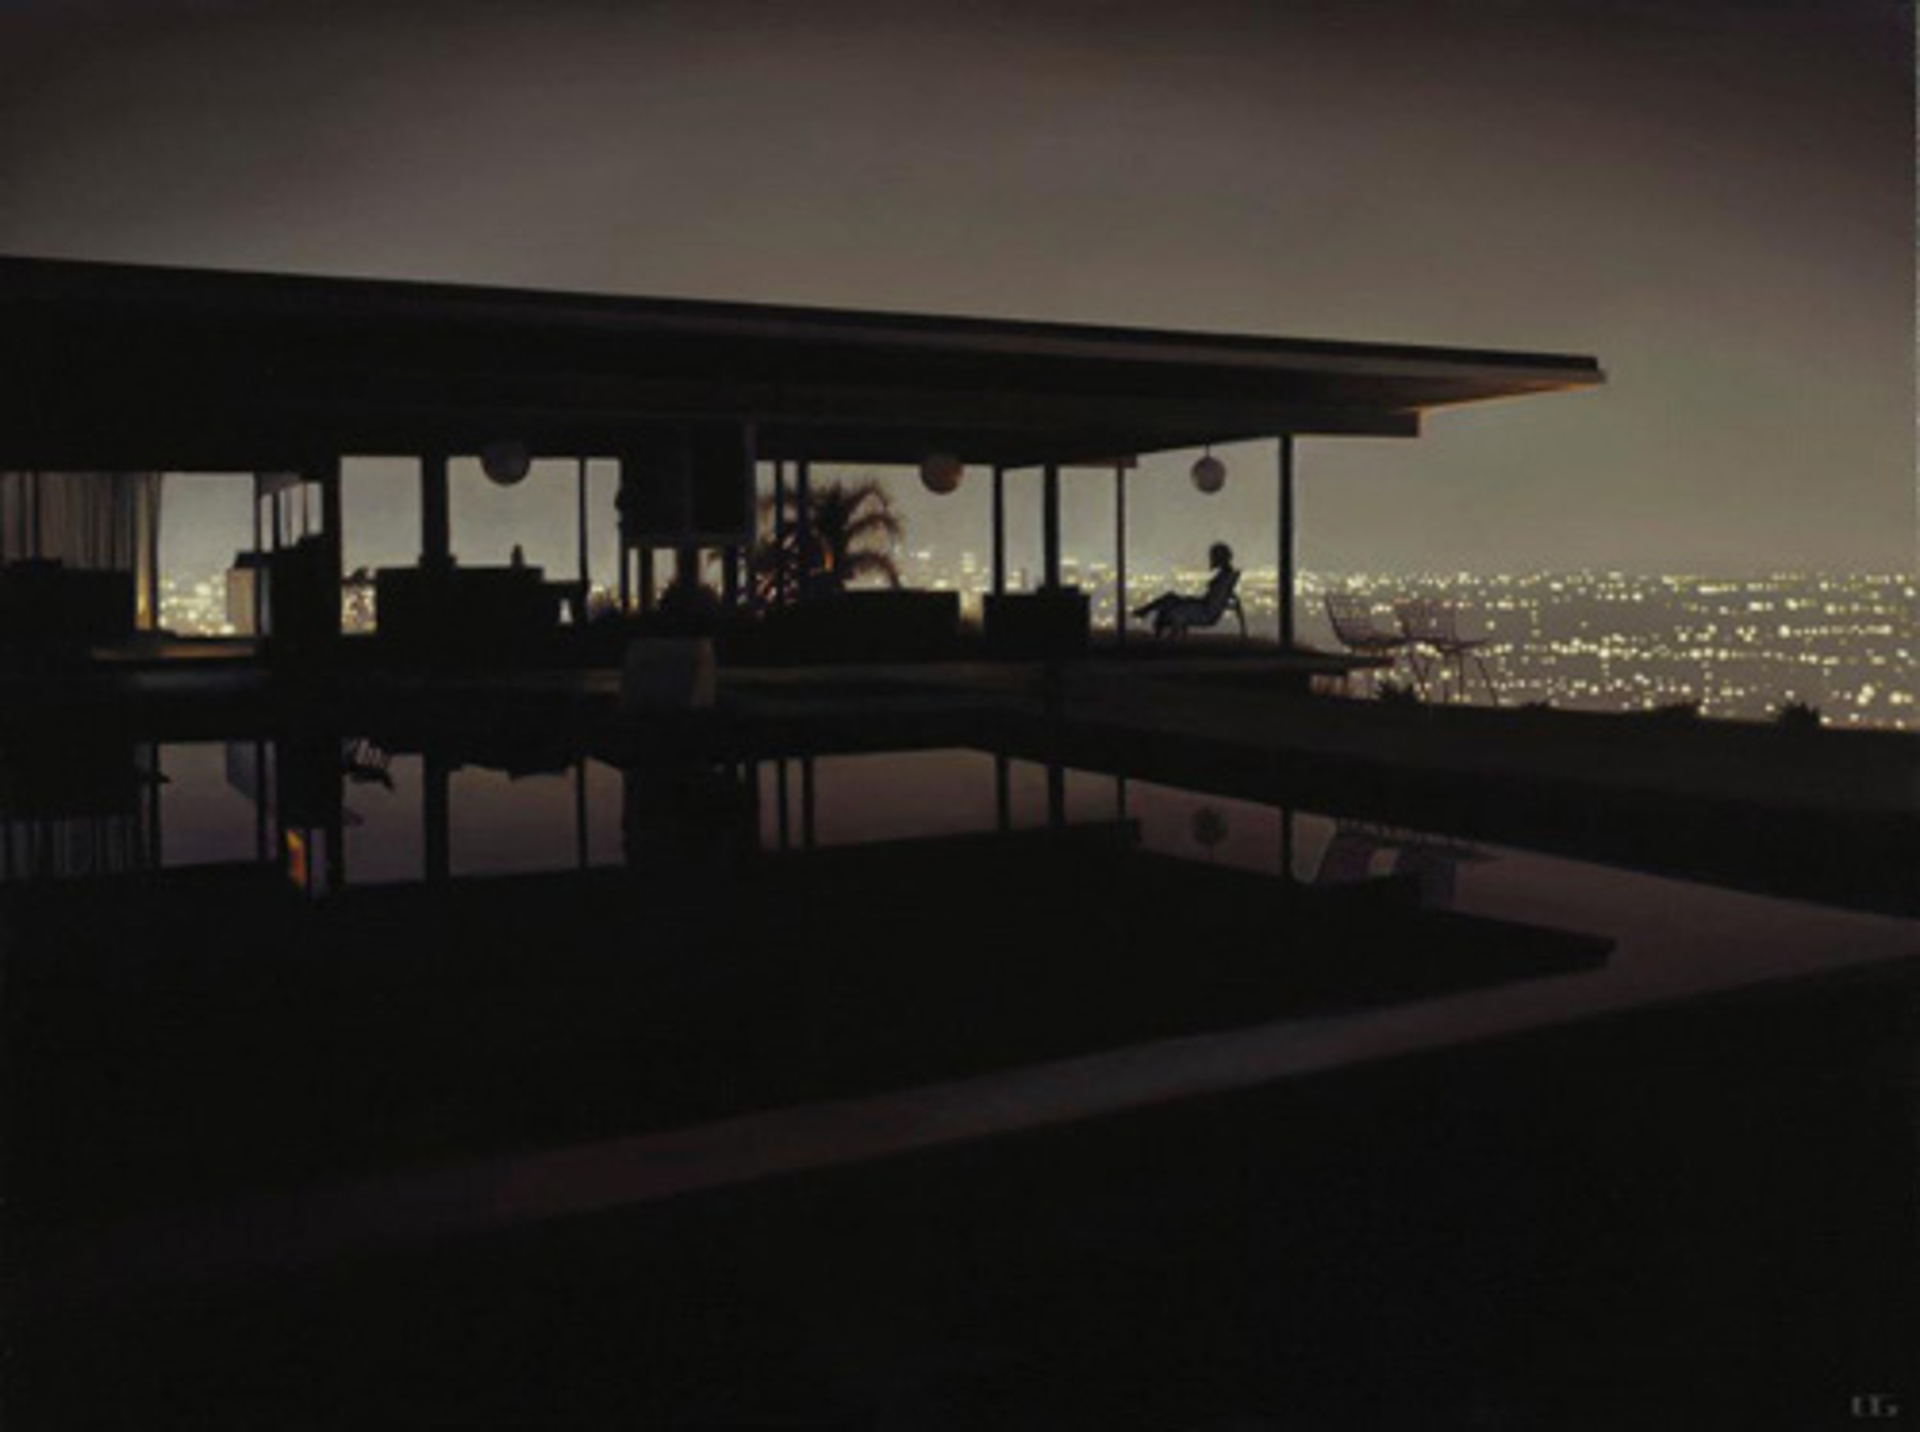 Stahl House at Night (S/N) by Carrie Graber